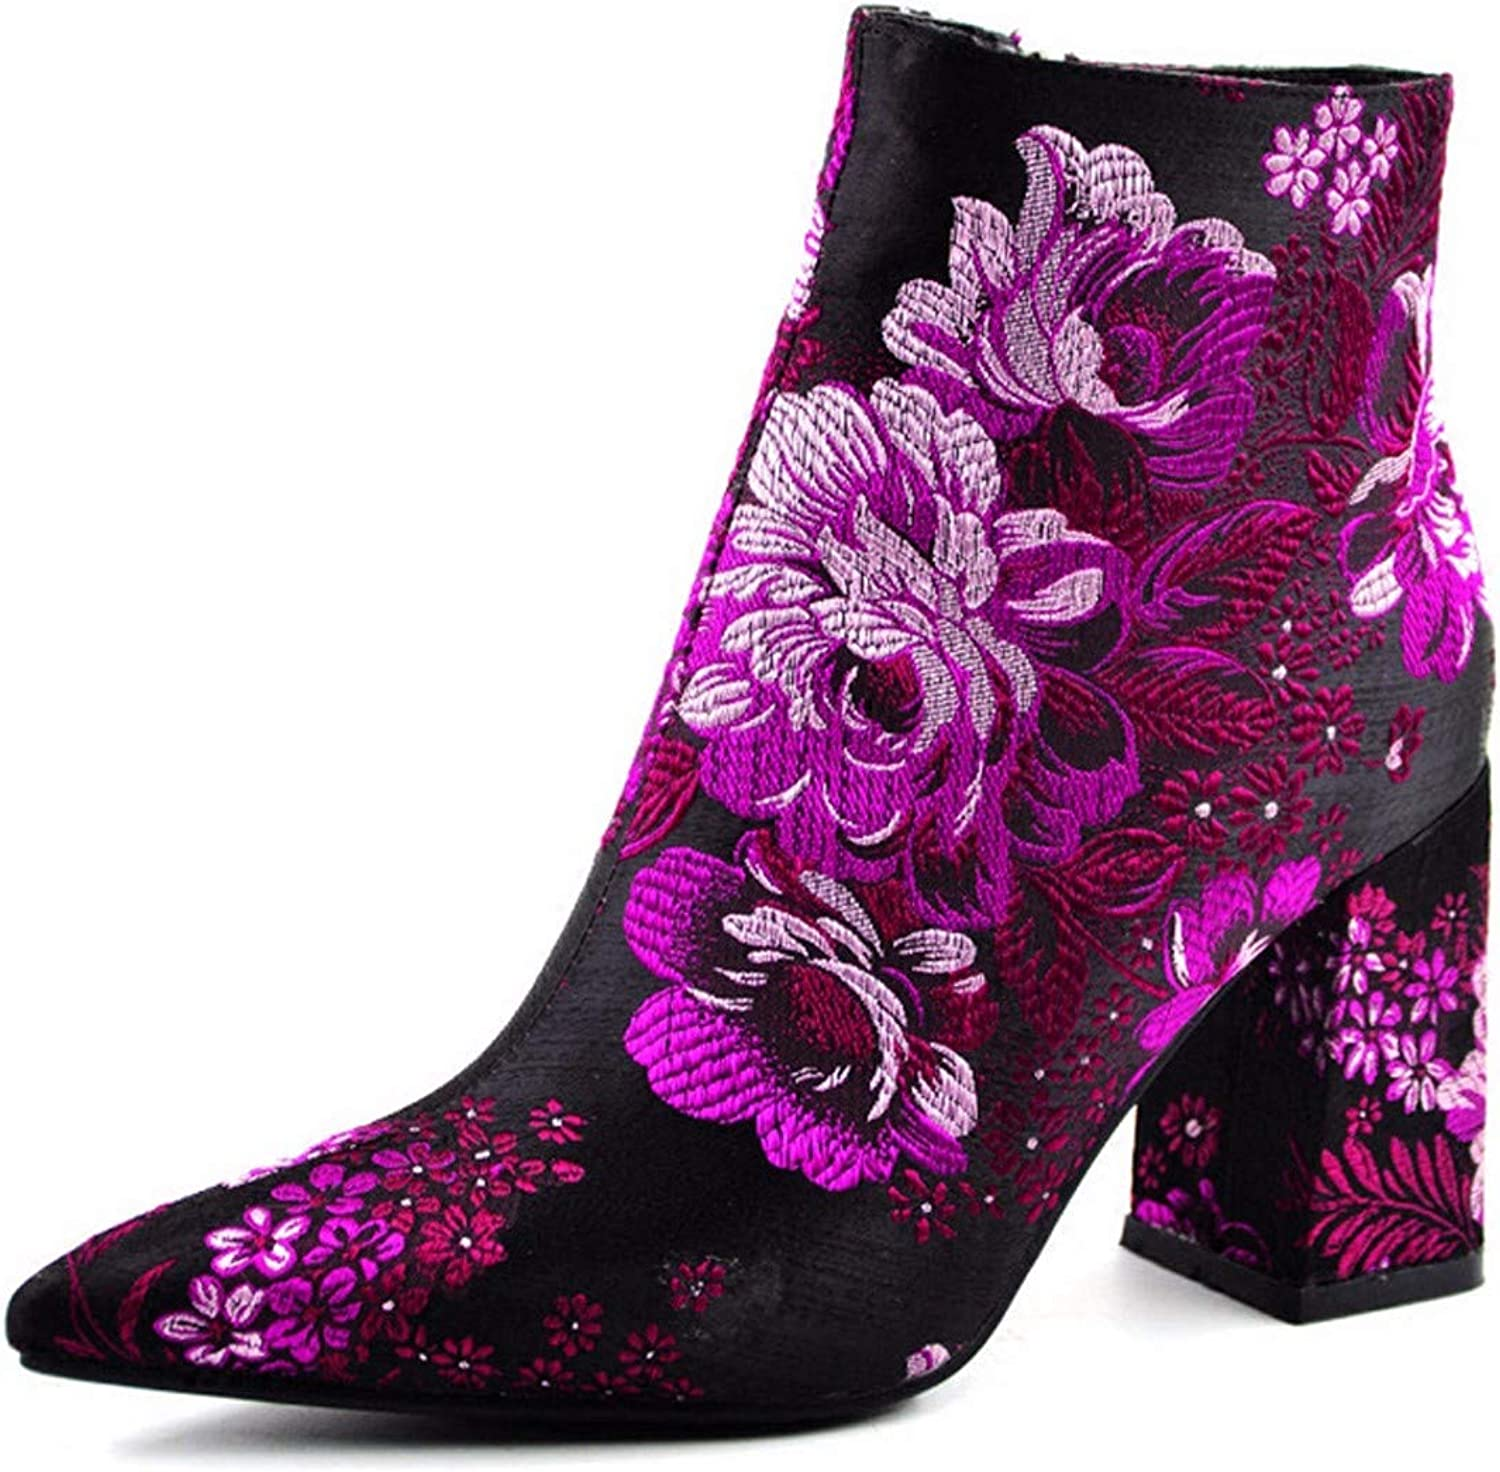 SFSYDDY Popular shoes Embroidered Boots Heel Height 9Cm Embroidery Rough Heel Round Head National Style Martin Boots Retro Everyday Cheongsam Boots Single Boot Tide